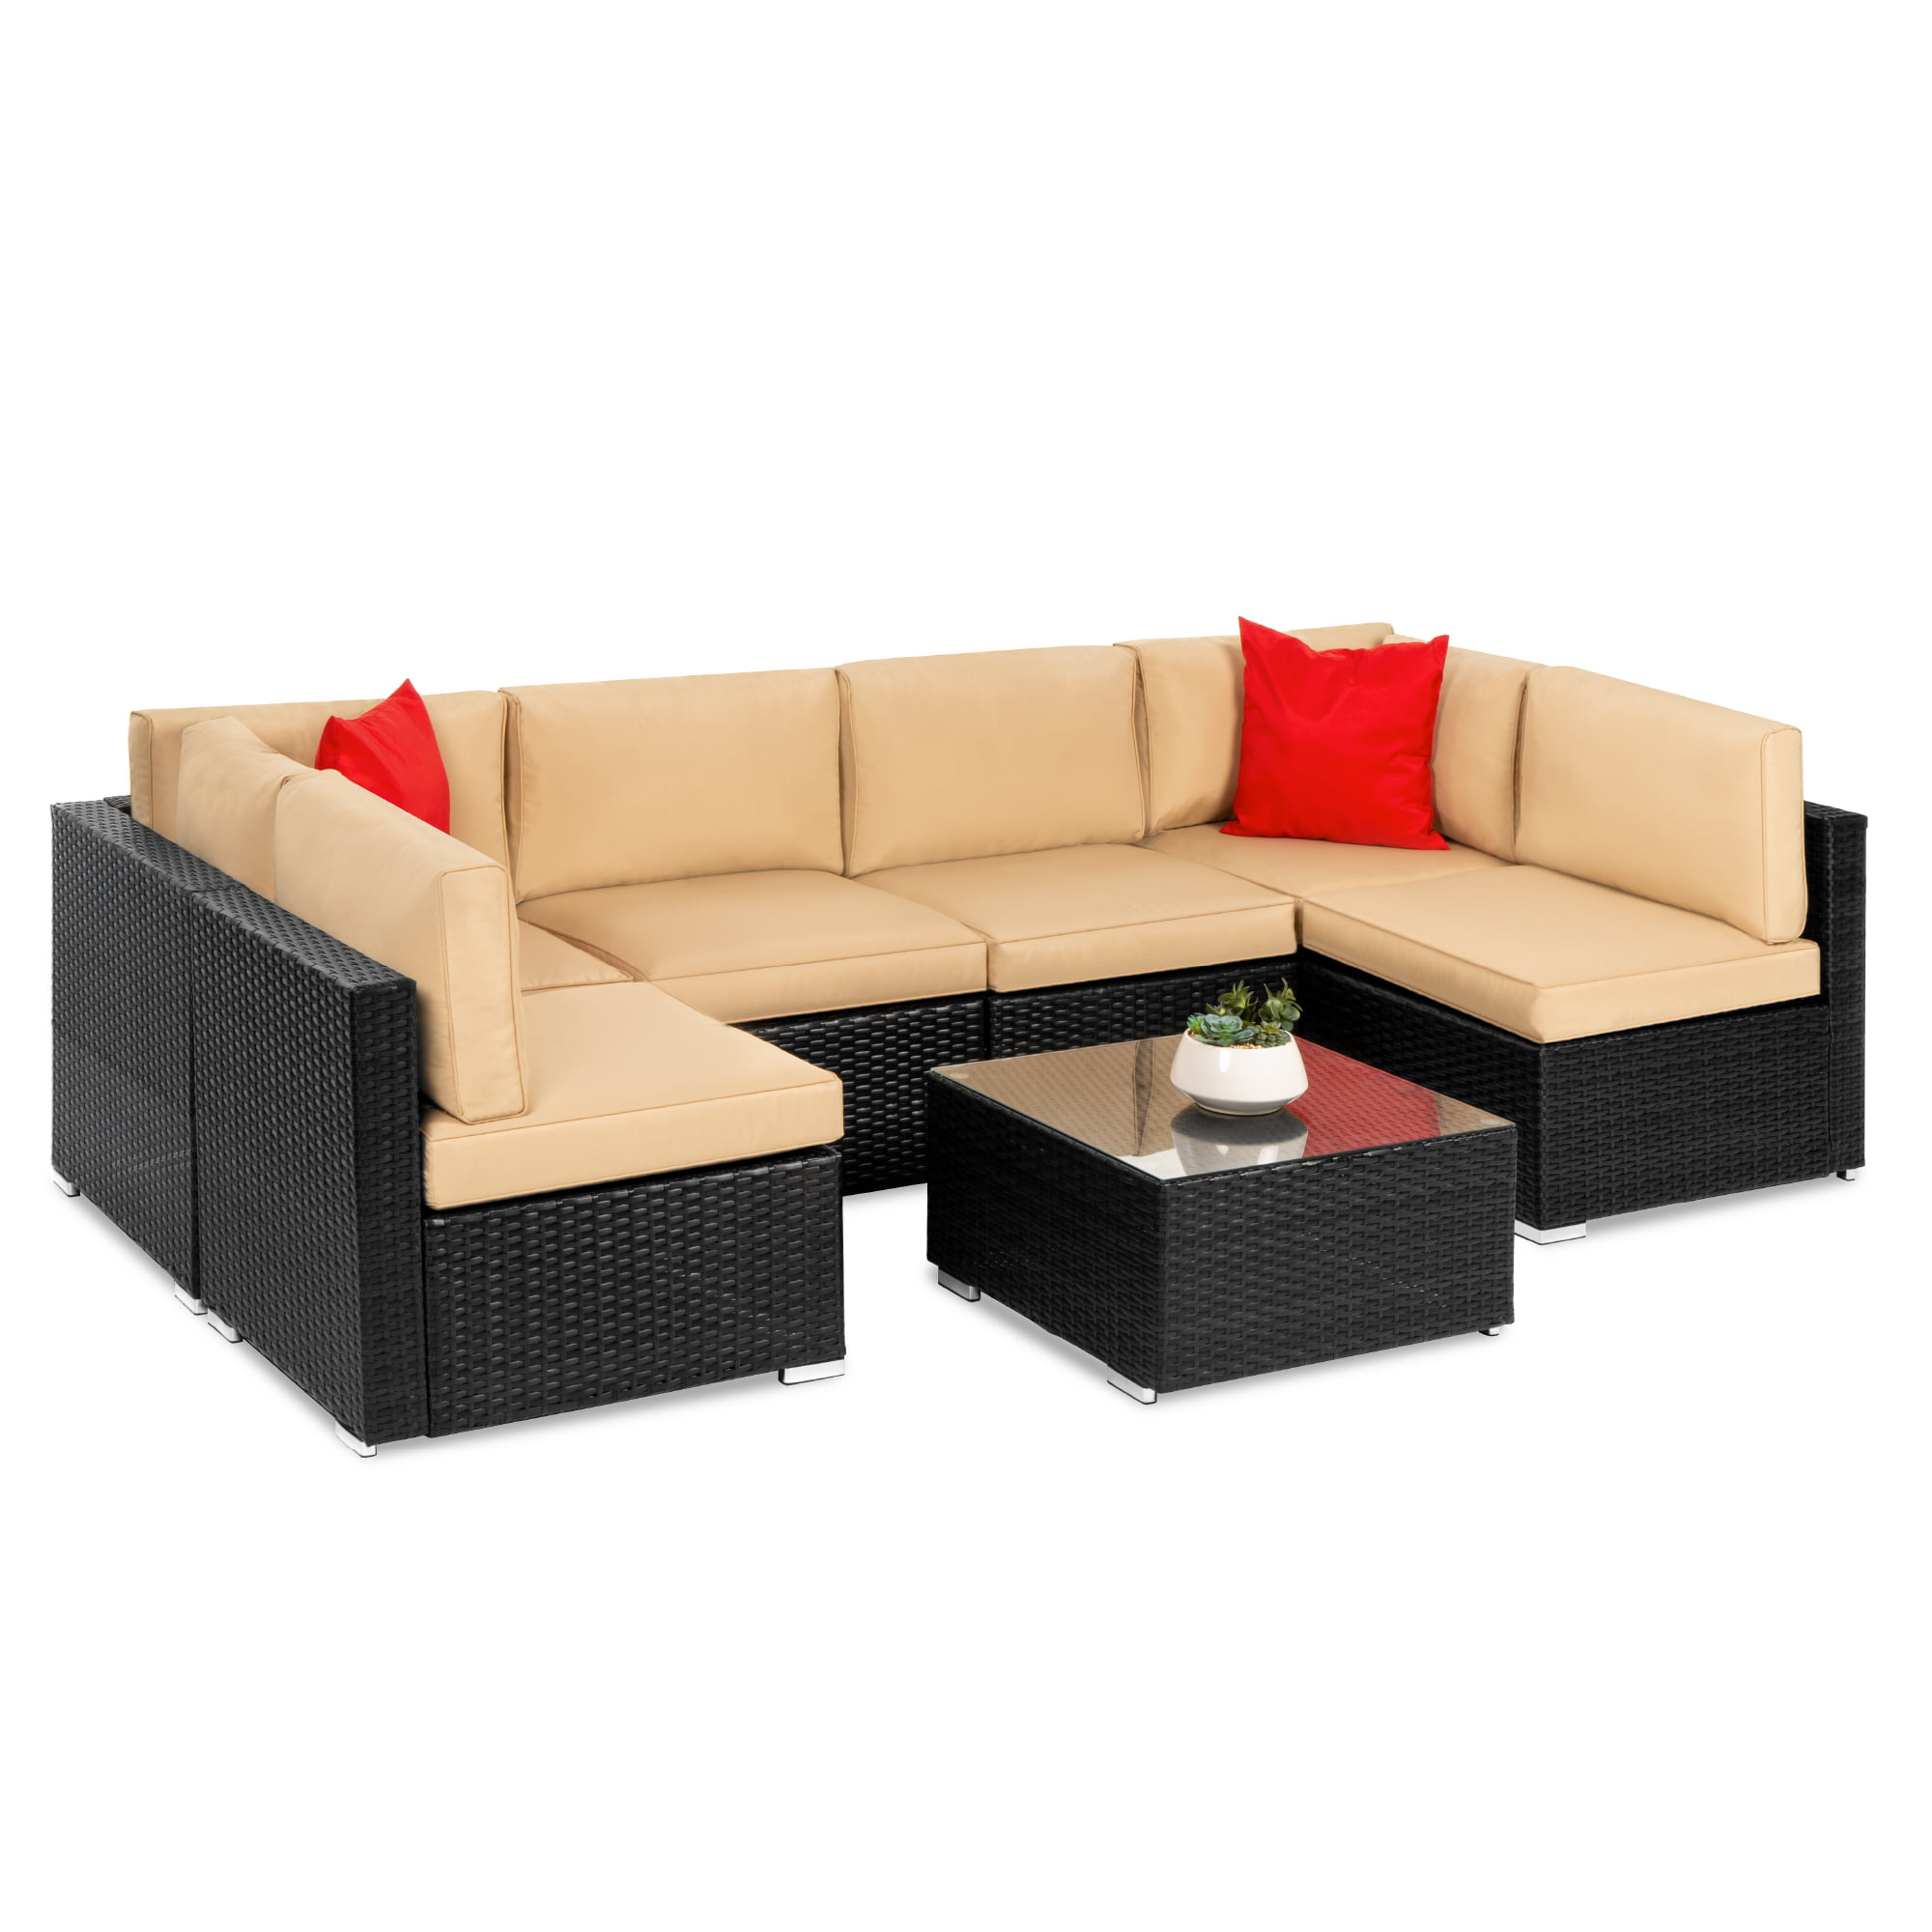 Tangkula 4 Piece Patio Furniture Set Black Outdoor Indoor Use Sectional Yard Furniture Set Modern Wicker Rattan PE Conversation Sectional Sofa Set w//Removable Cushion Rattan Table Chair Set